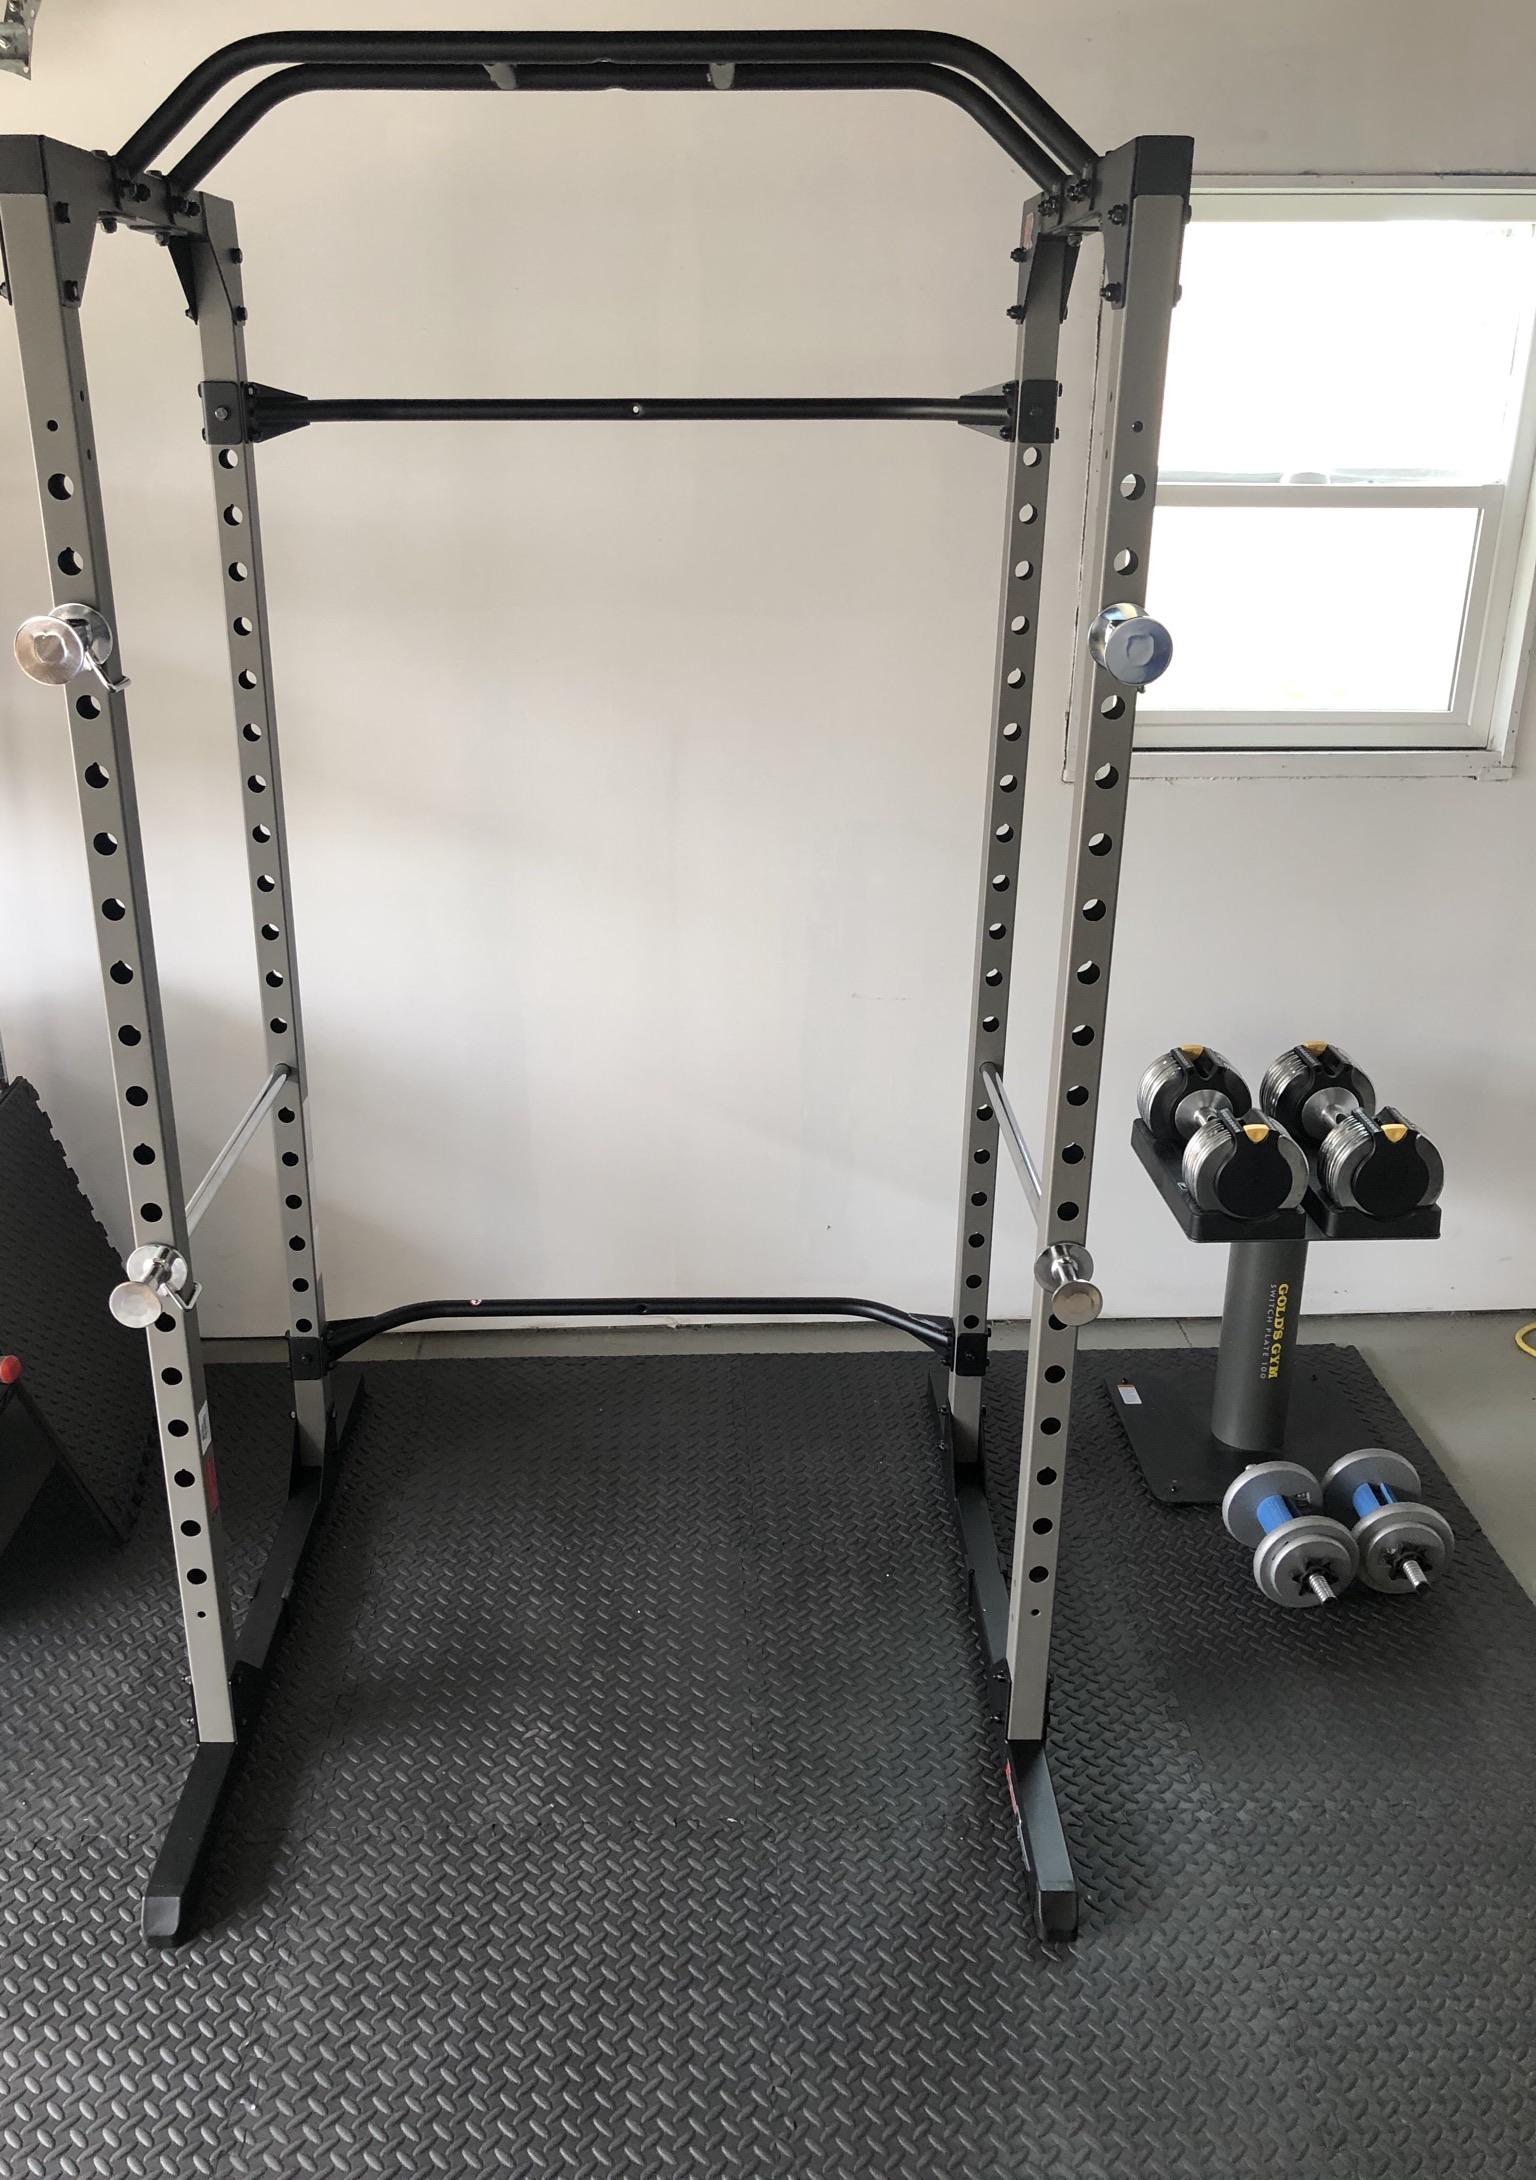 Weight Set For Sale Craigslist : weight, craigslist, Finally, Rack!, Barbell, Plates, Budget., Suggestions?, Homegym